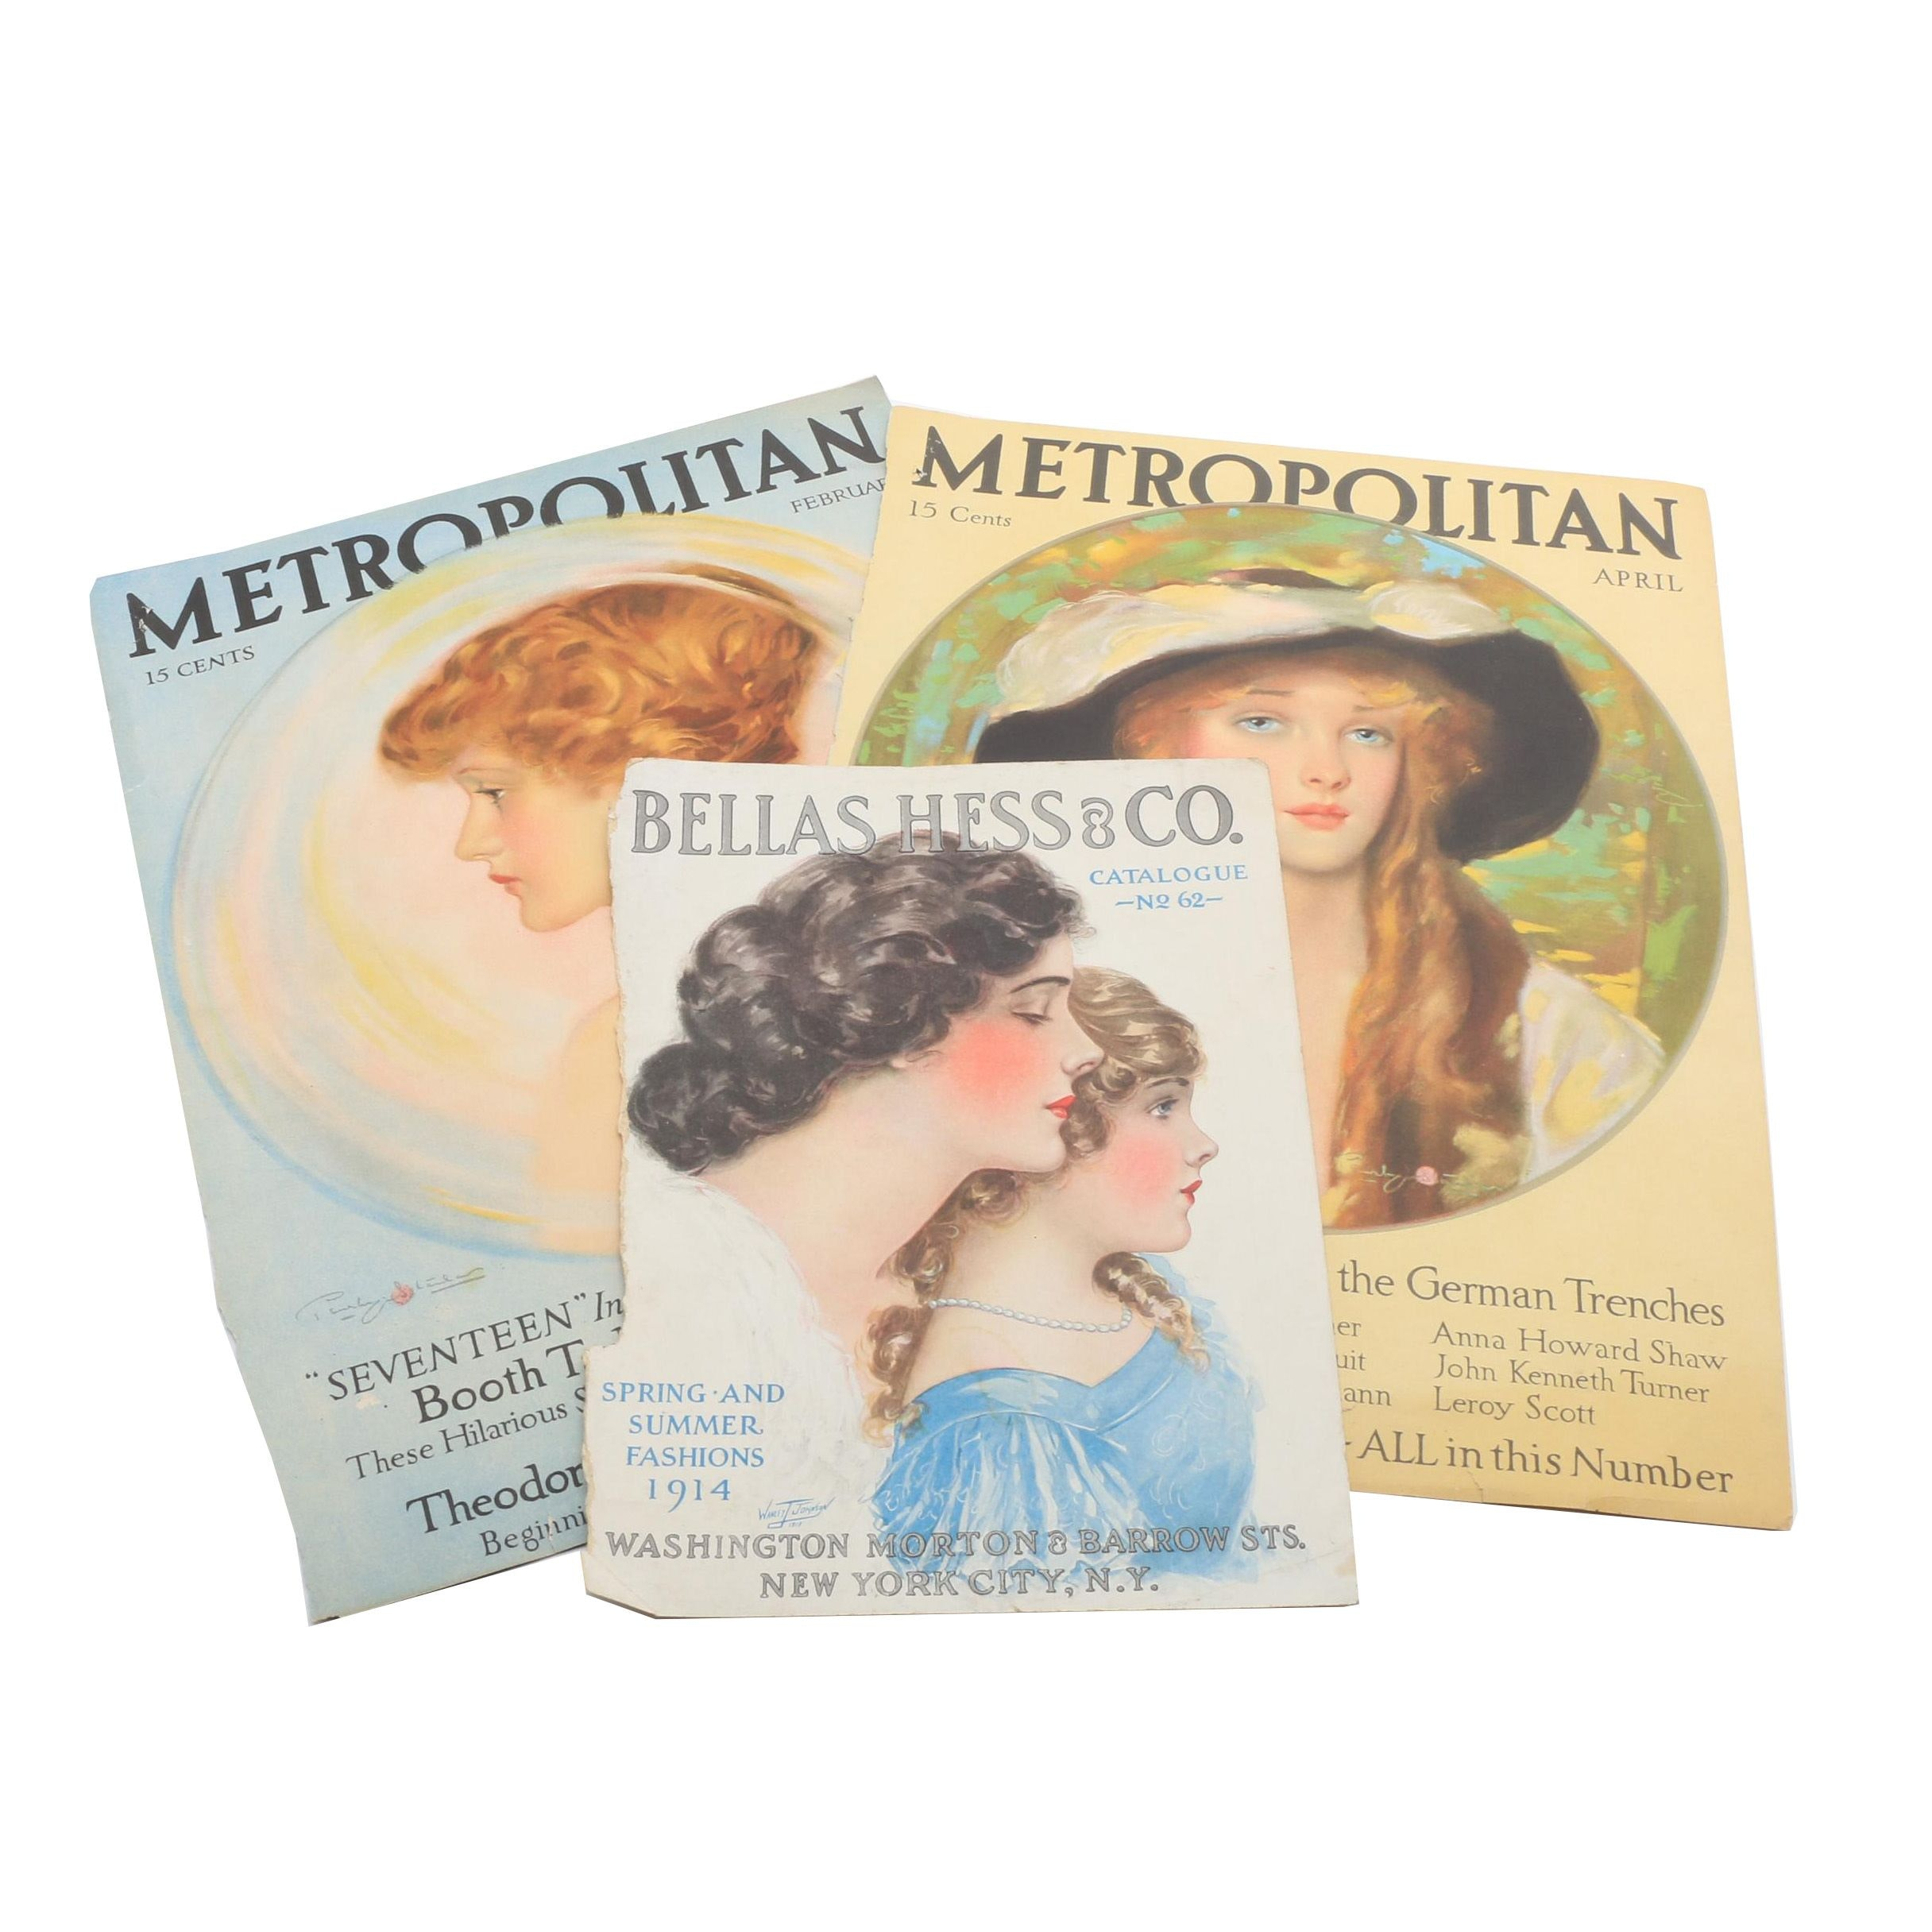 Antique Metropolitan Magazine Covers and Bellas Hess & Co. Cover